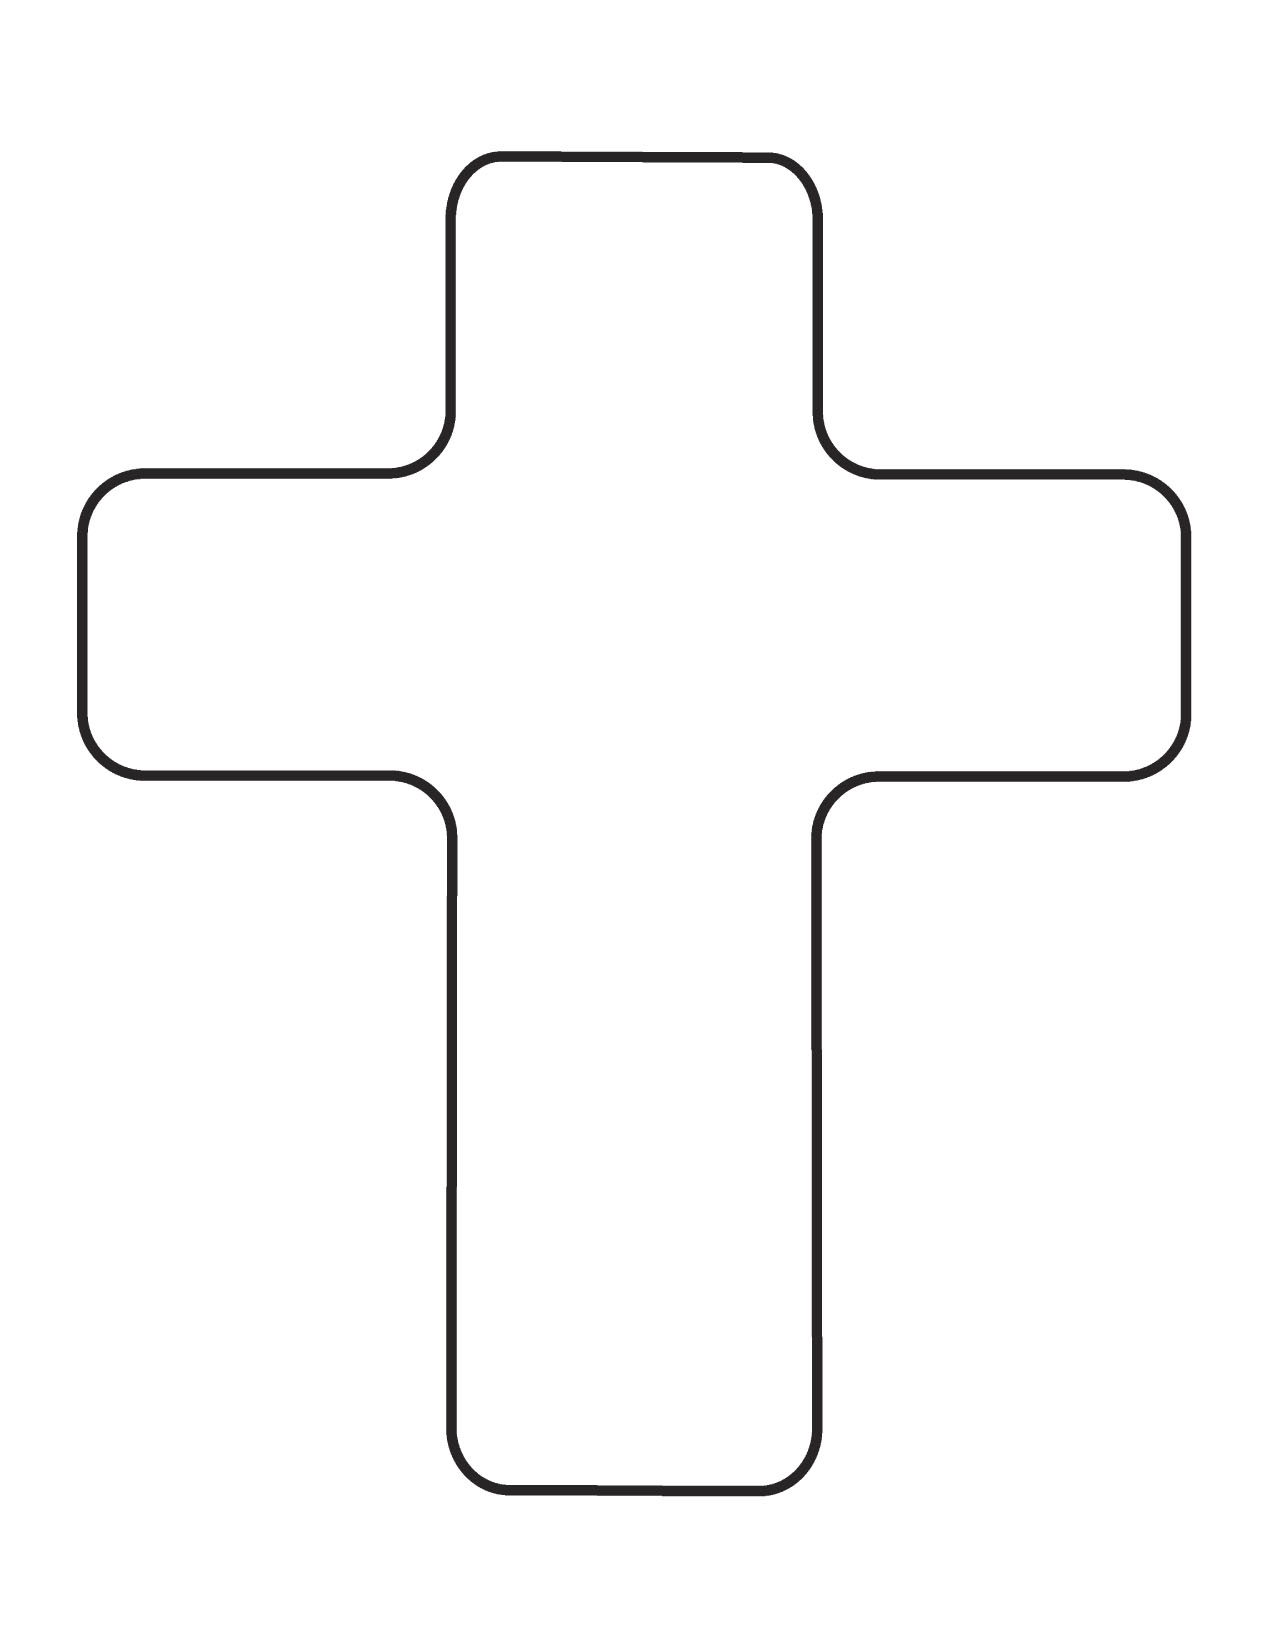 Cross clipart black and white free images 2